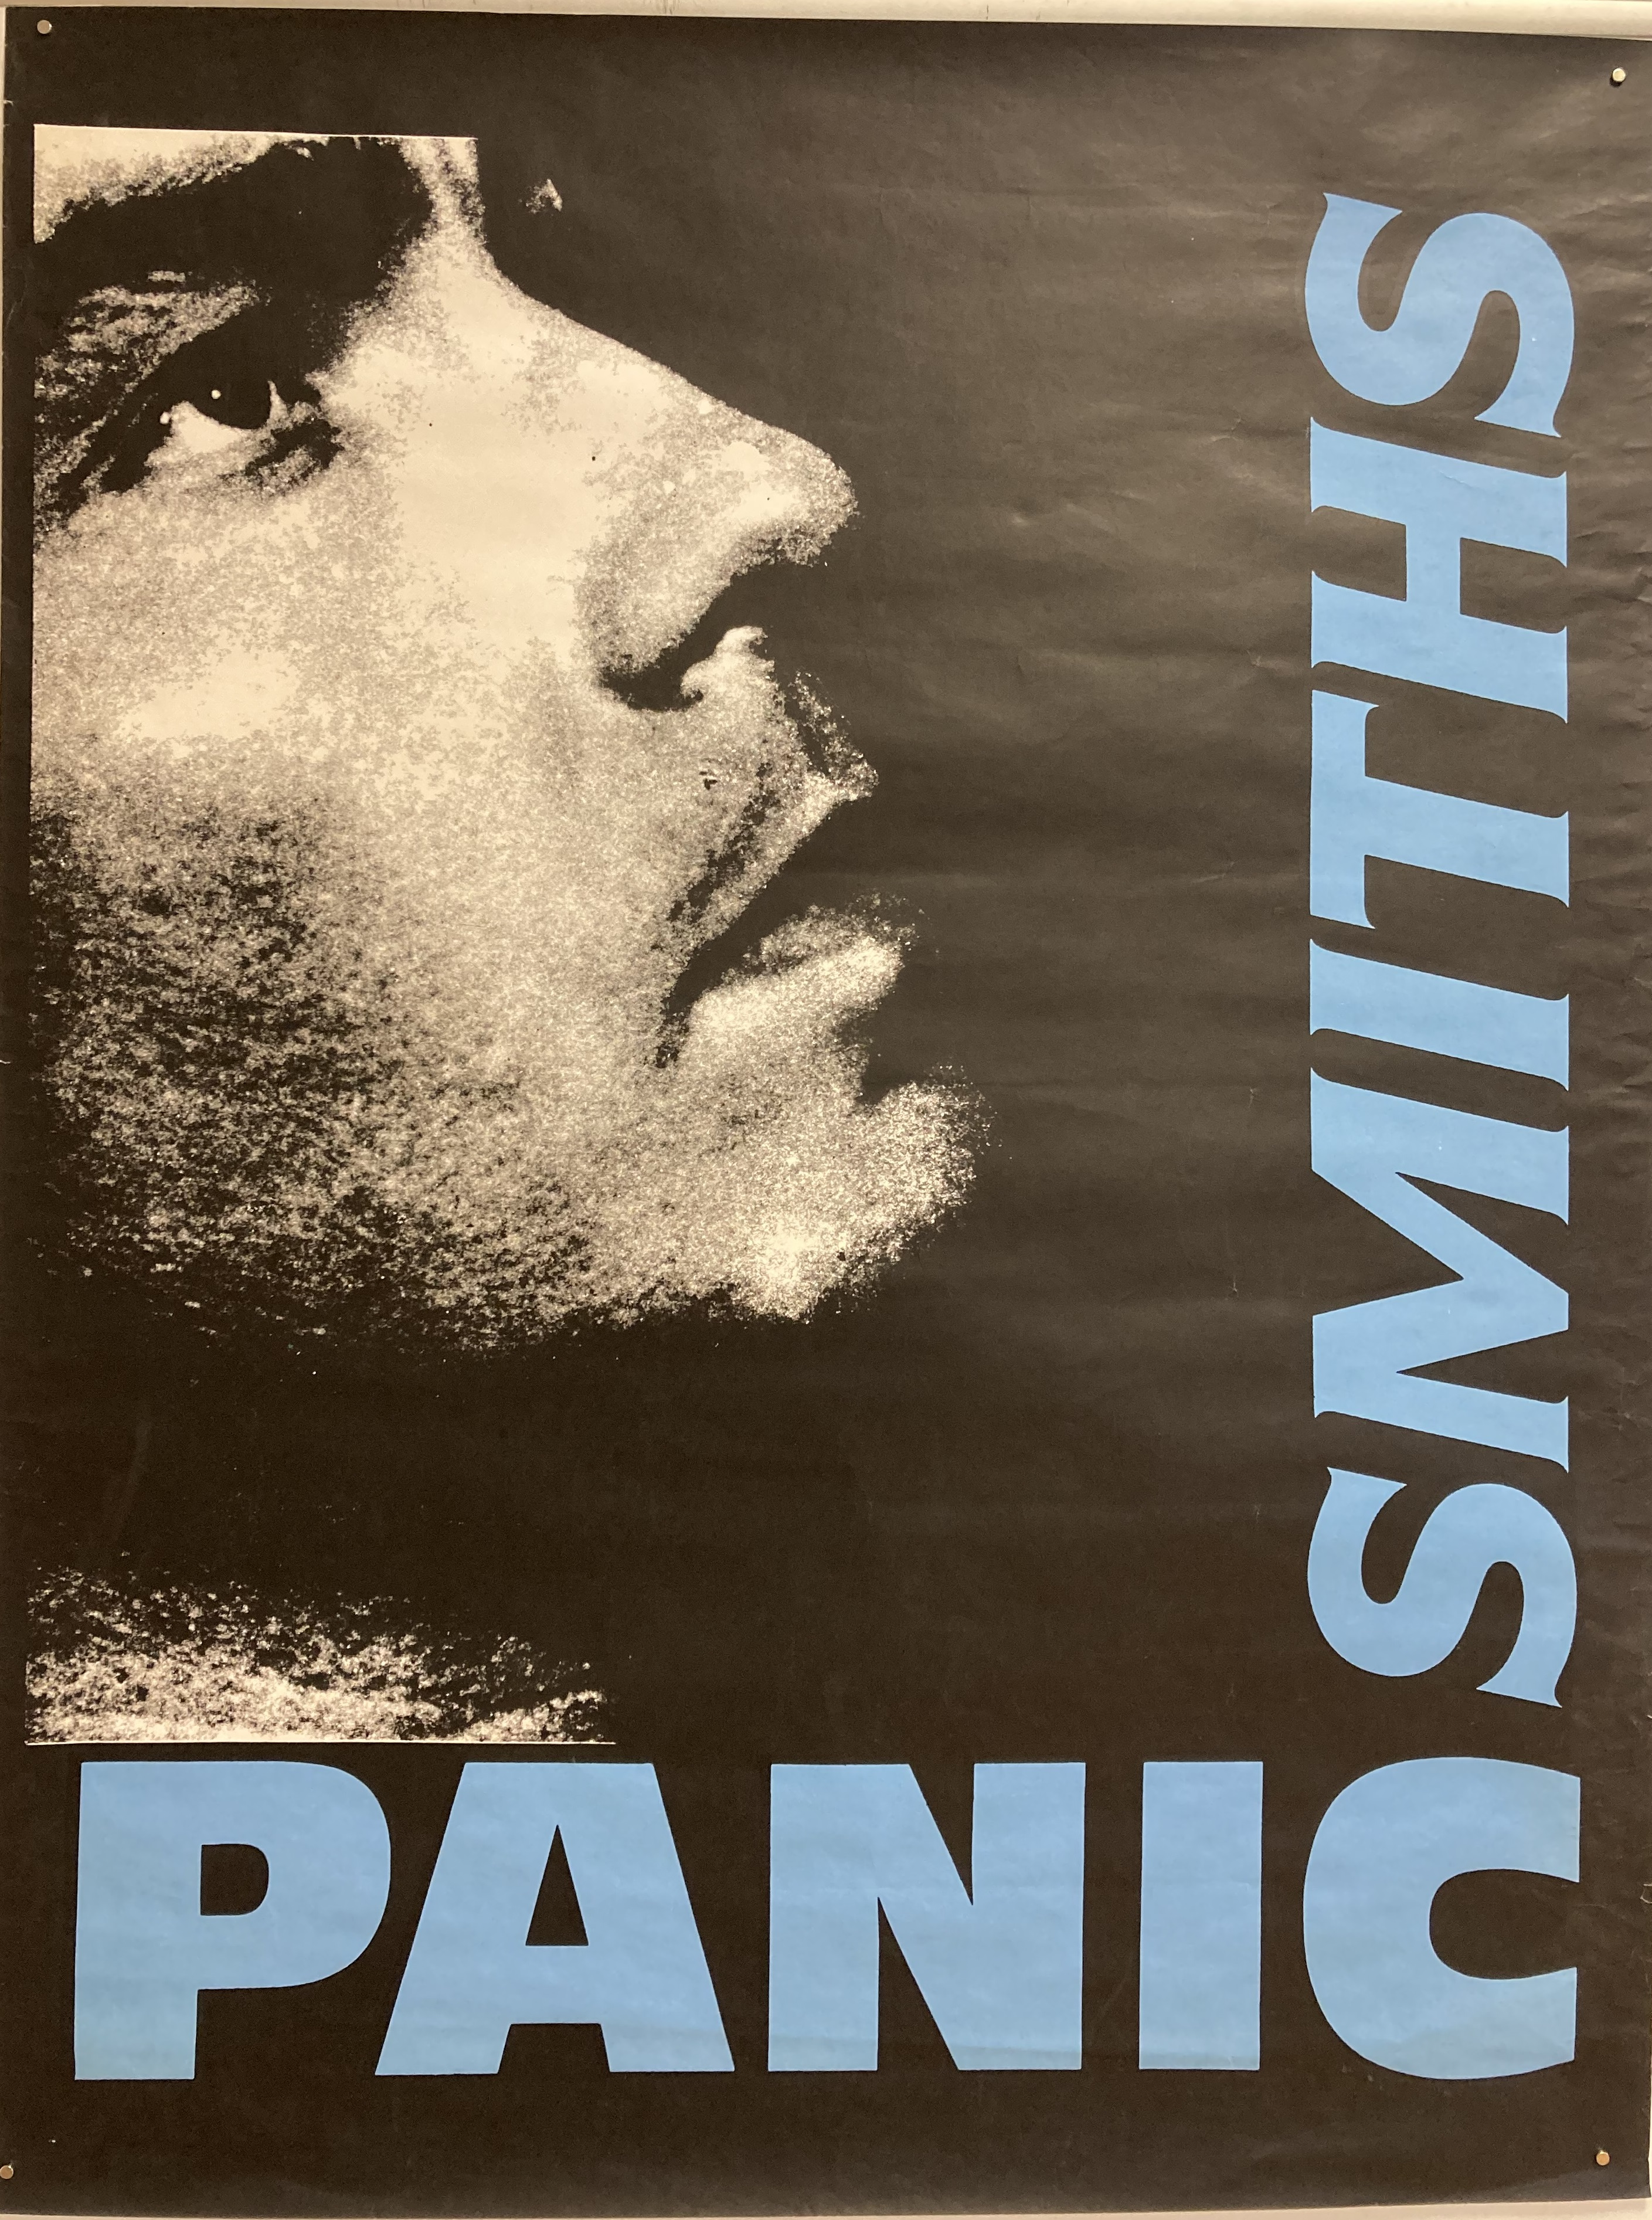 THE SMITHS PANIC POSTER. A possibly unofficial poster design produced for The Smiths - Panic.